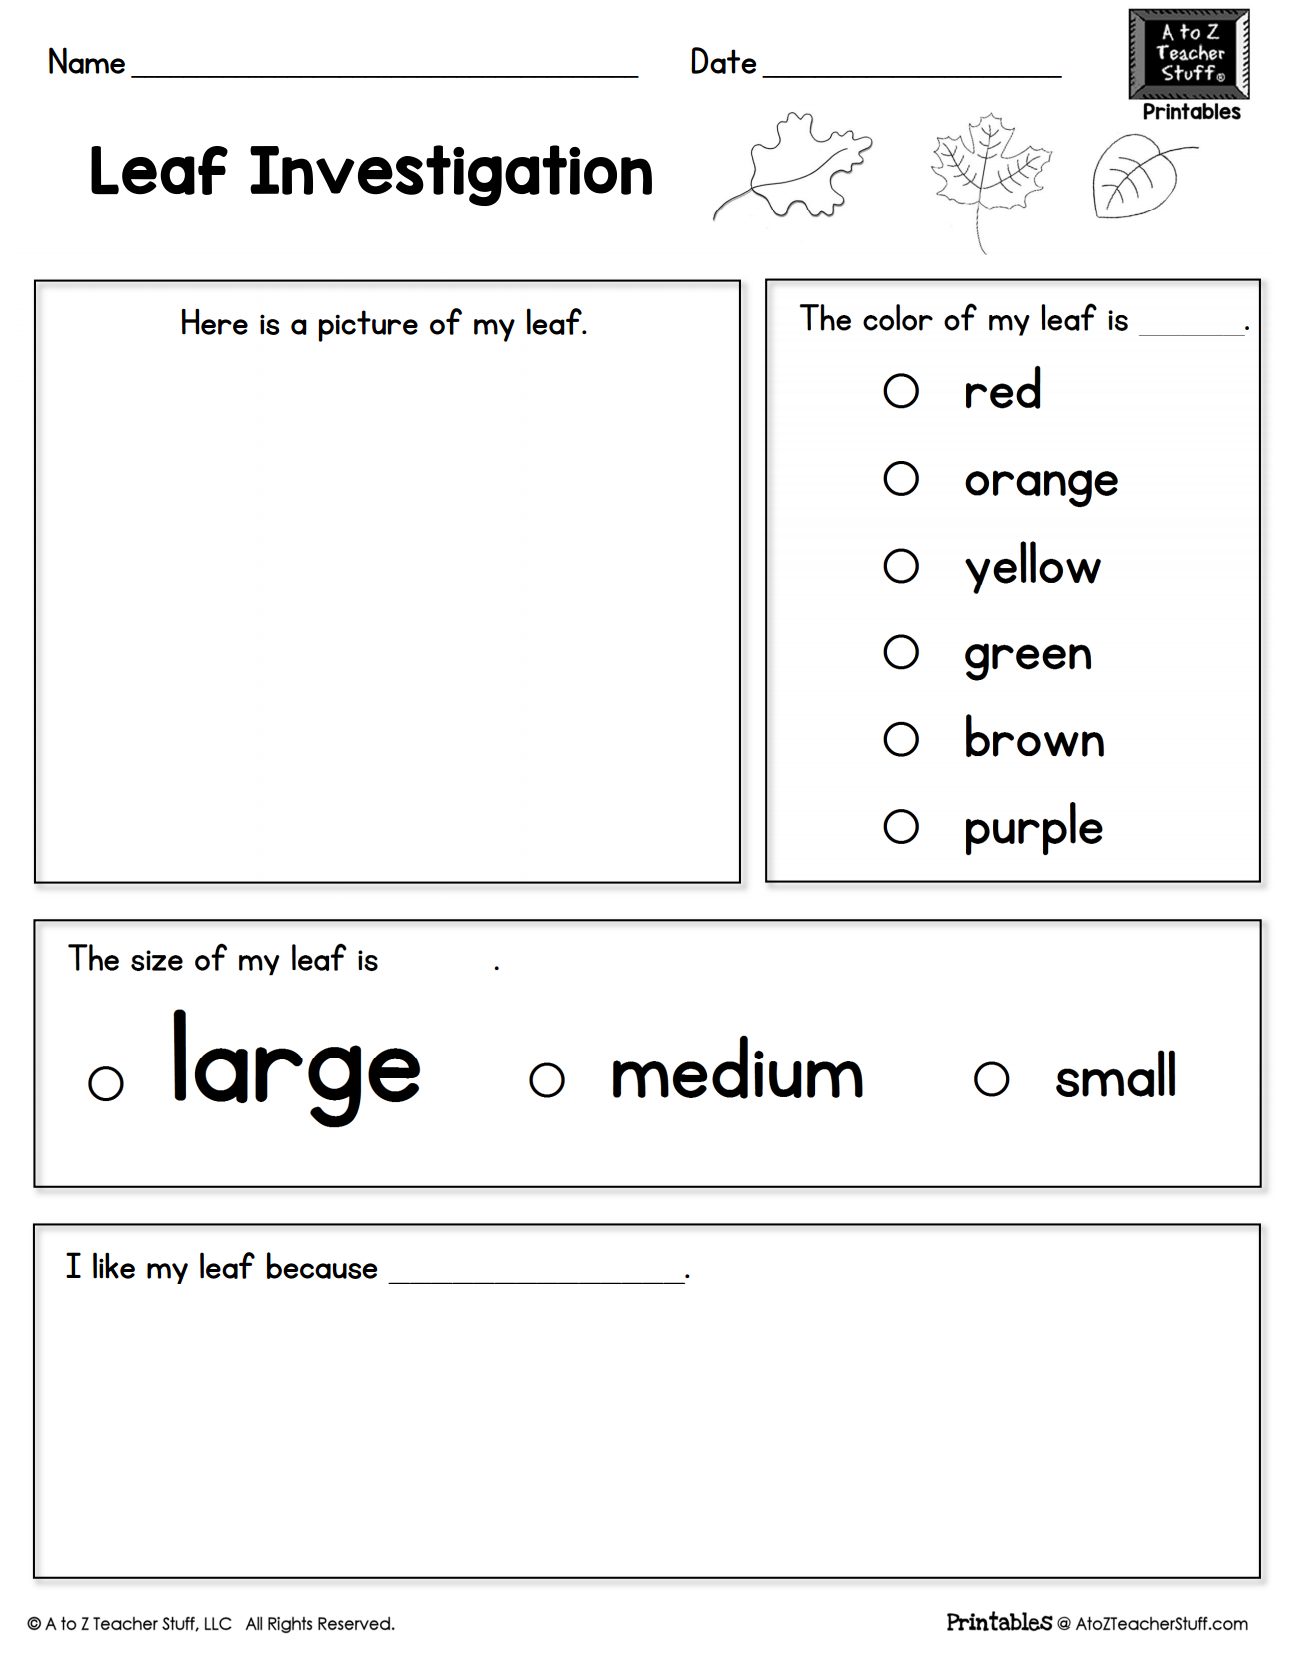 worksheet Perimeter Worksheets Pdf area and perimeter worksheets printables a to z teacher stuff leaf investigation printable worksheet